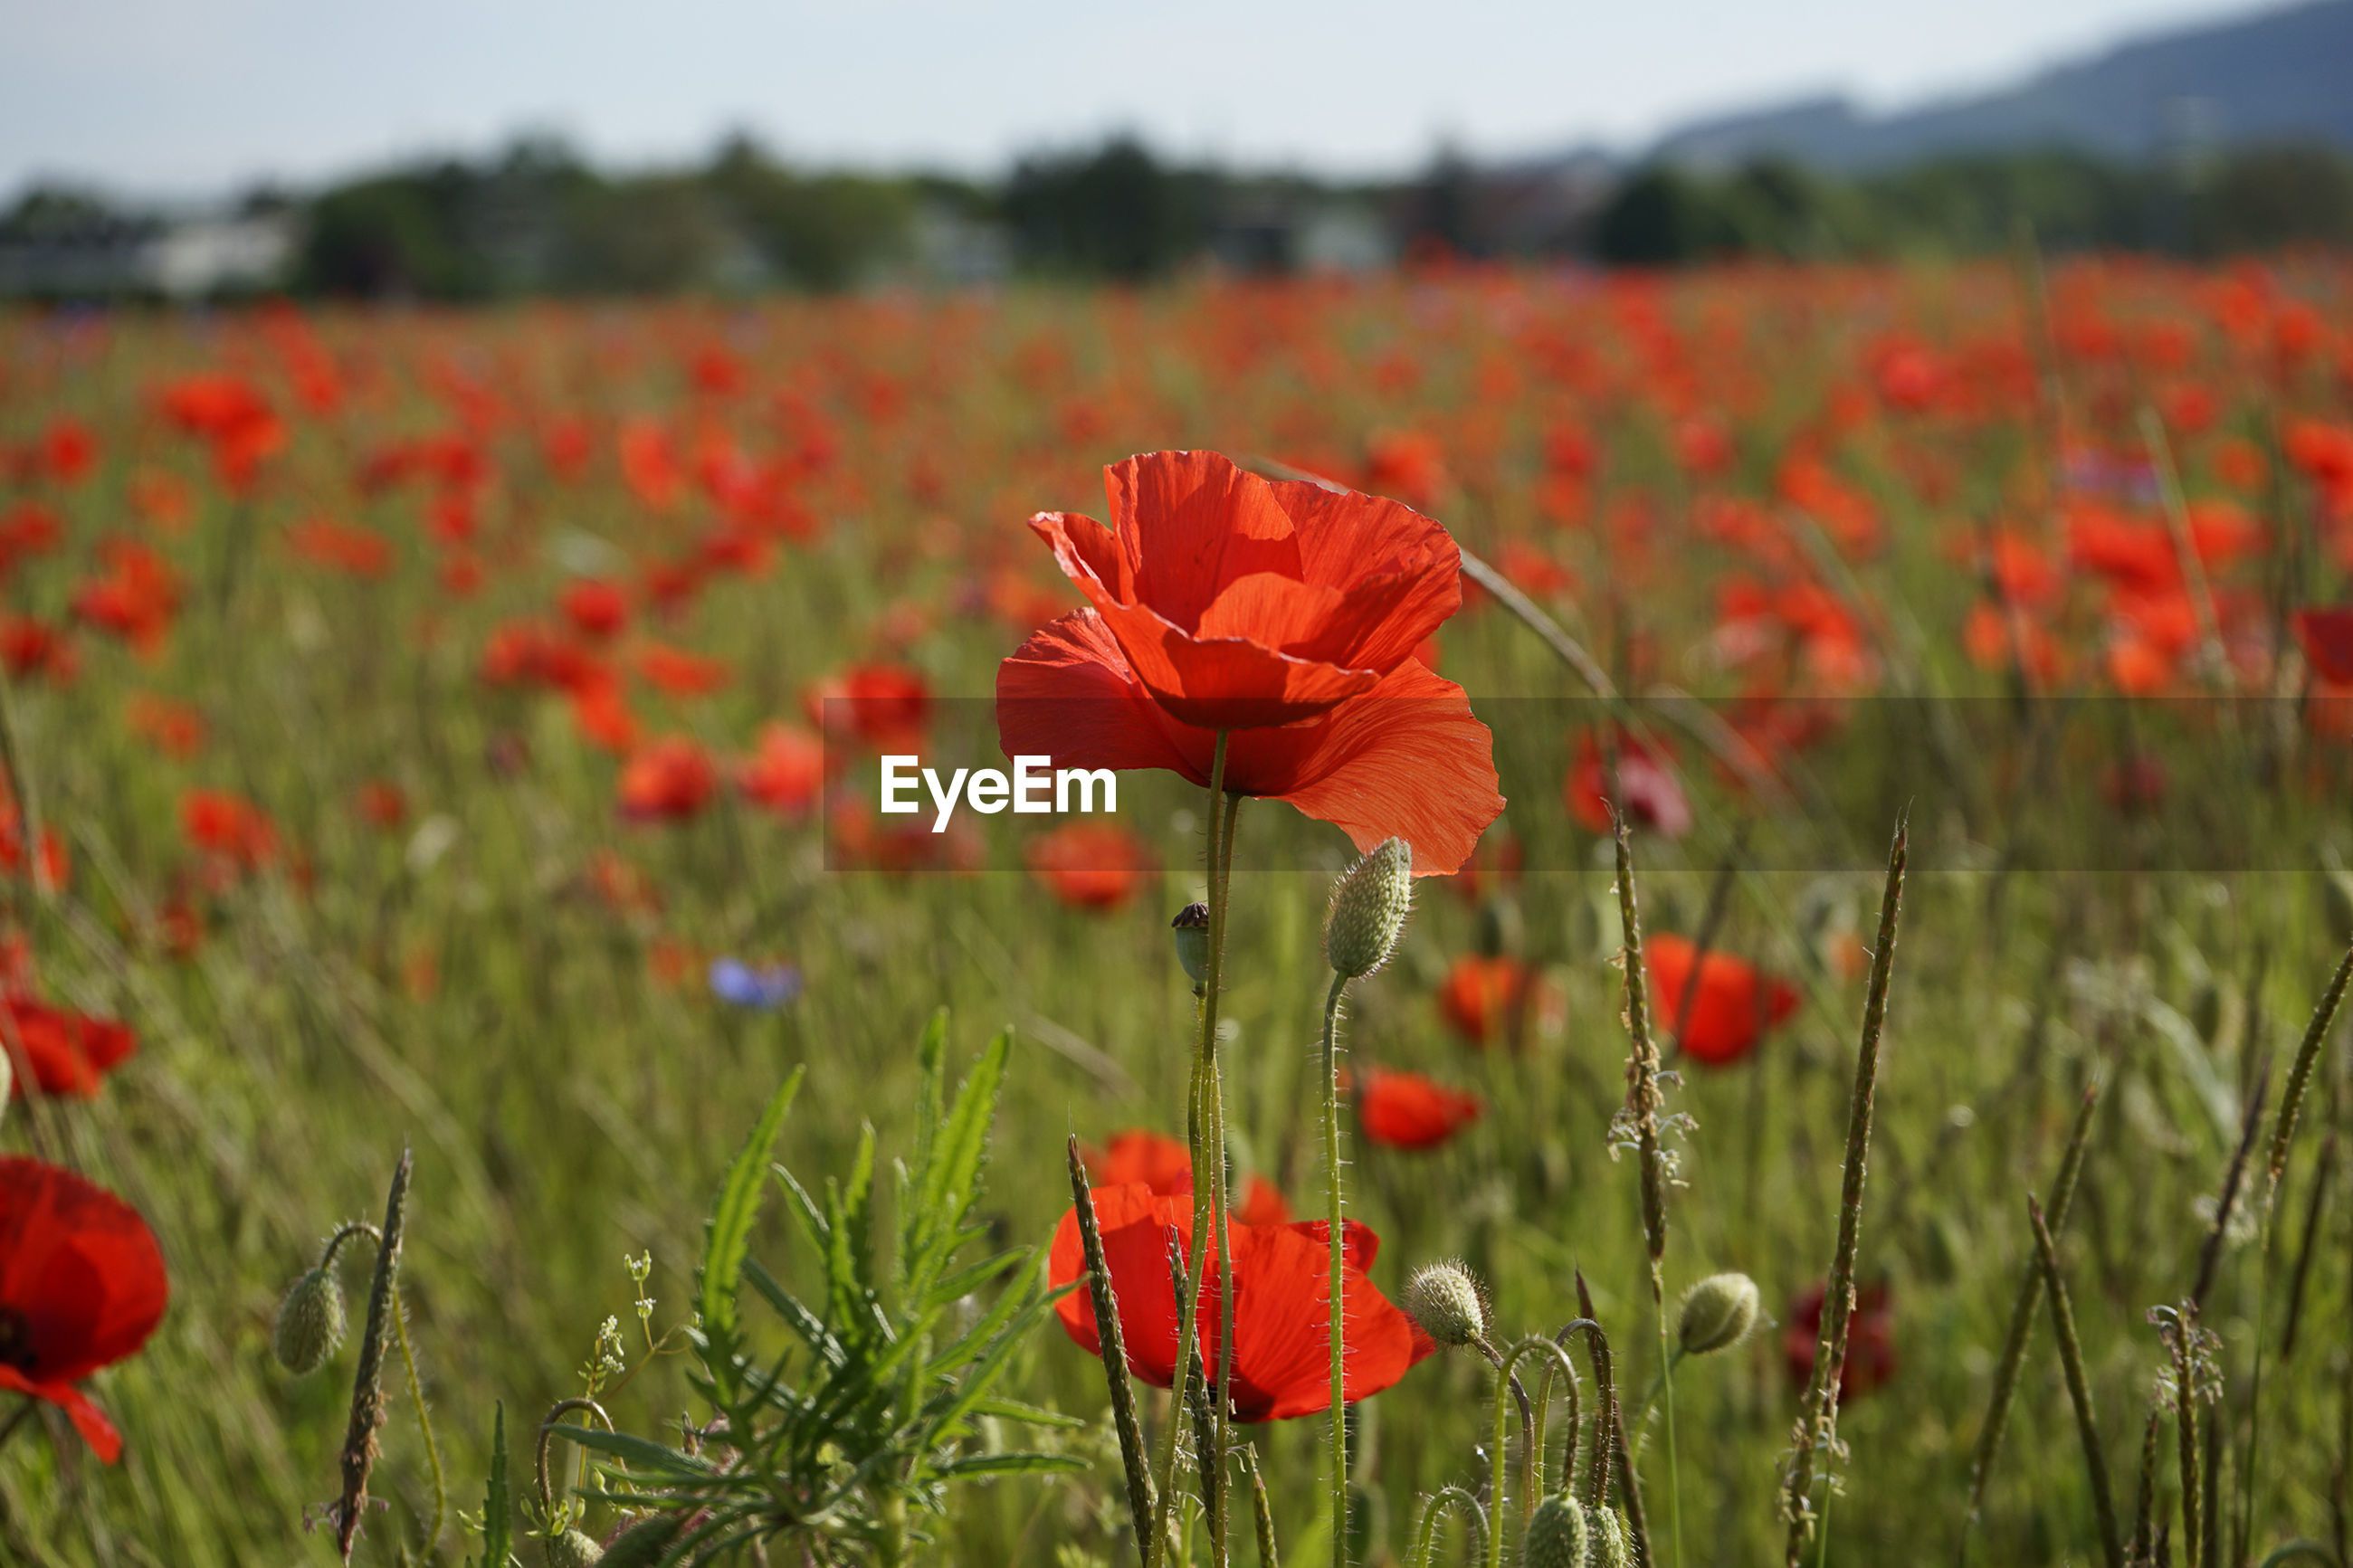 RED POPPY FLOWERS BLOOMING ON FIELD